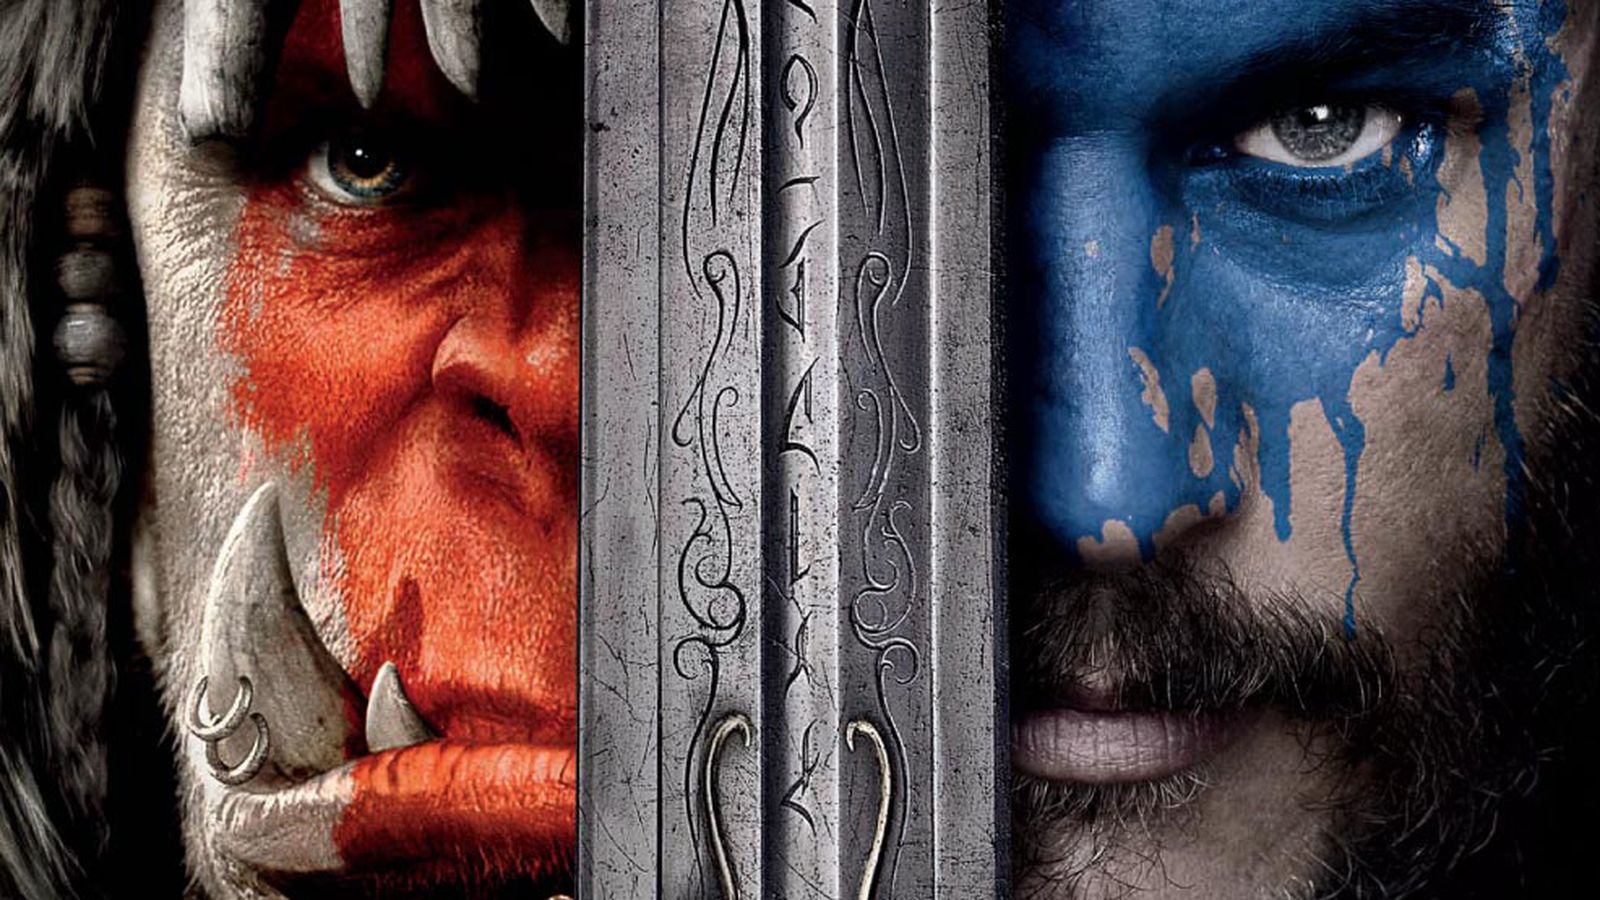 warcraft-movie-poster-full_987.0.0